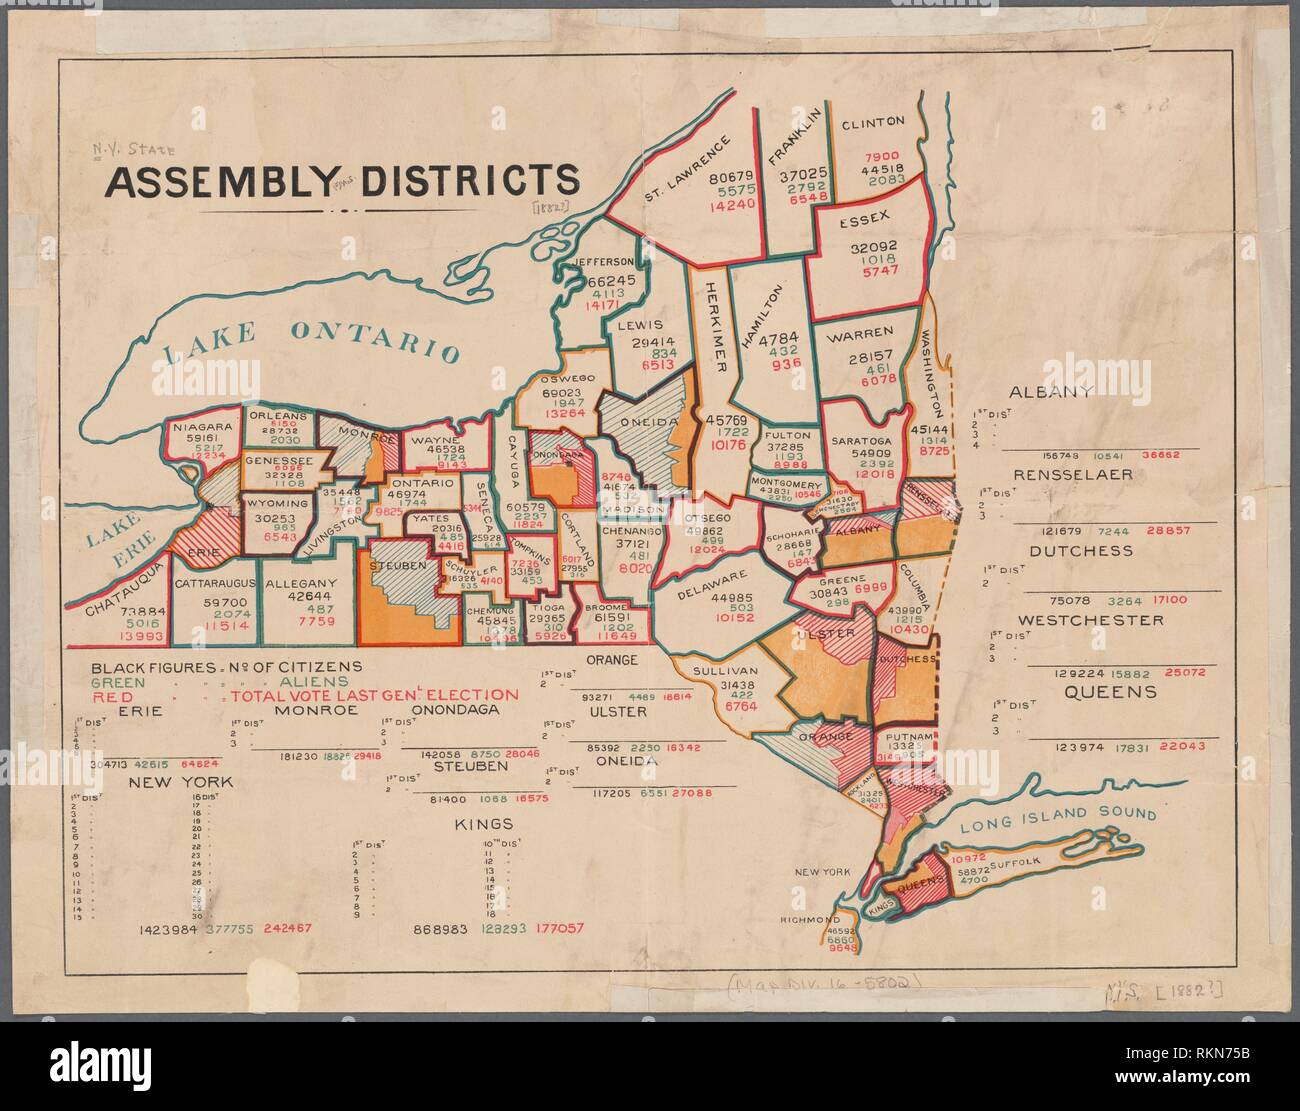 embly districts Additional title: N.Y. State embly districts ... on